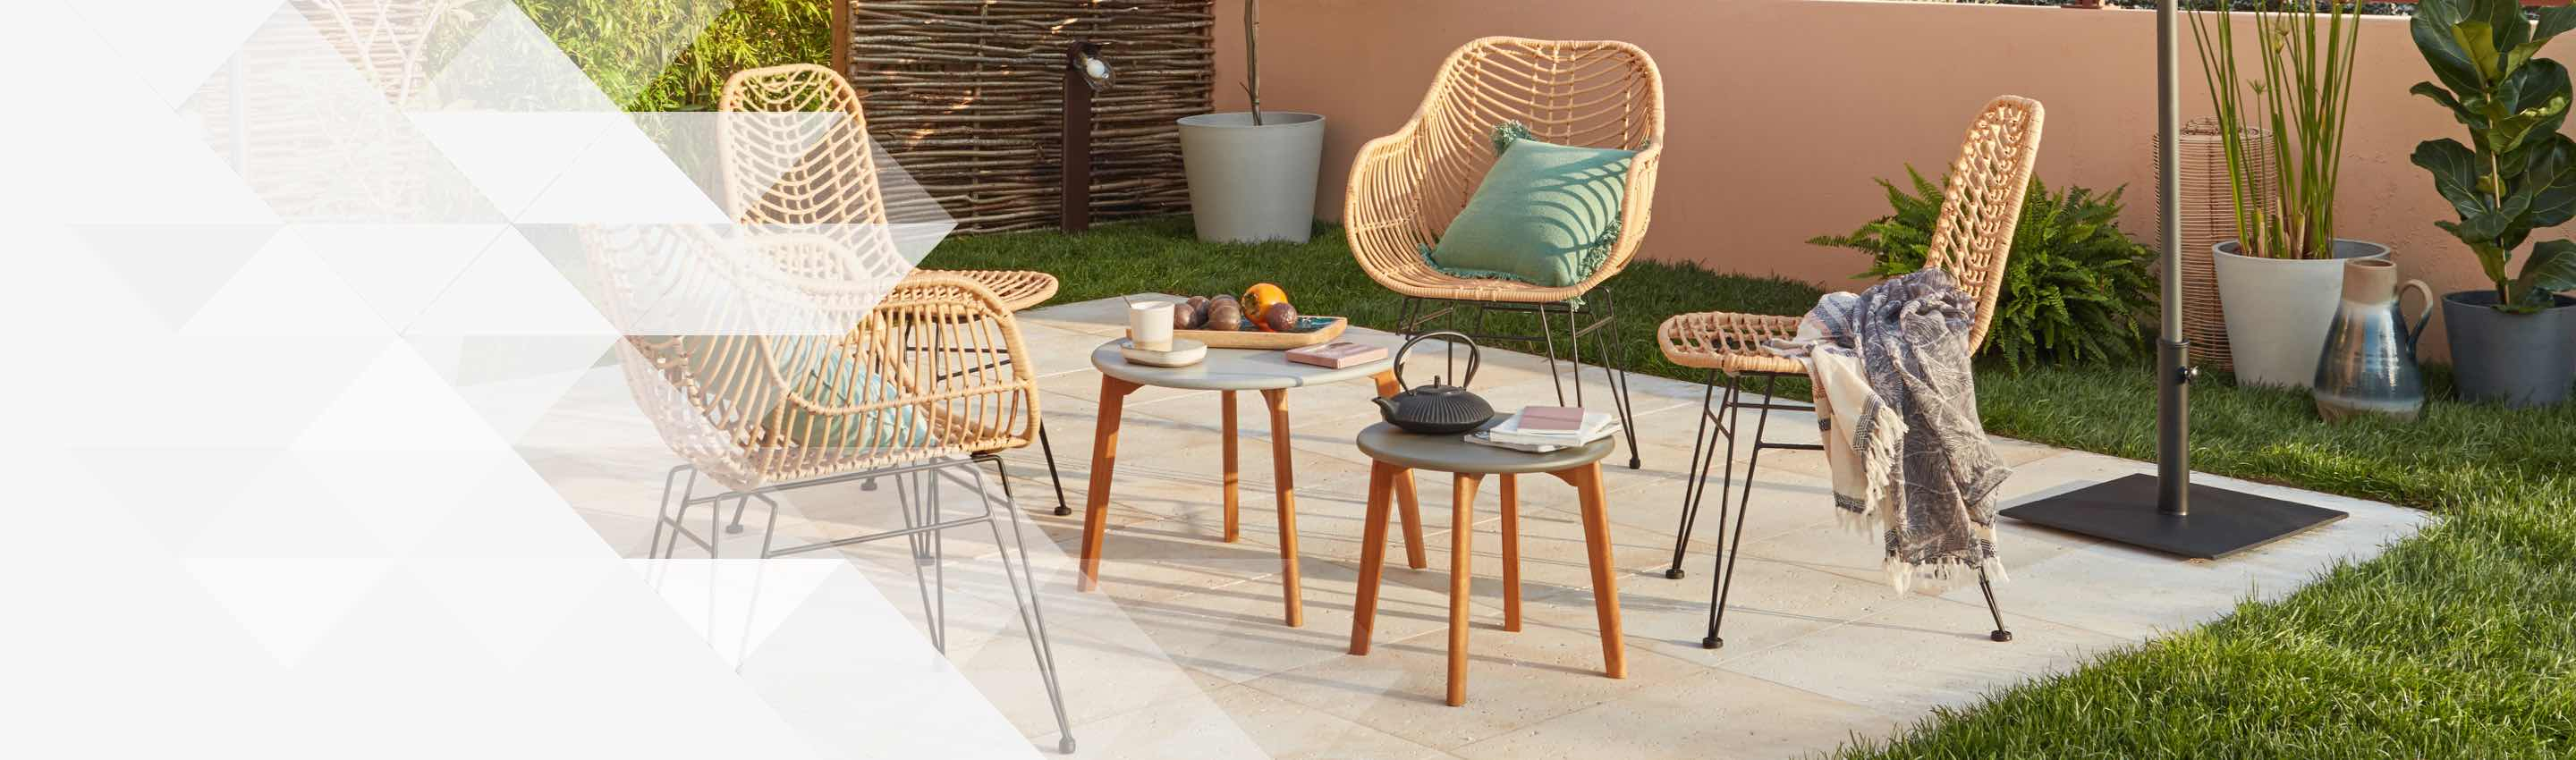 Kettler Salon De Jardin Salon De Jardin Table Et Chaise Mobilier De Jardin Leroy Merlin